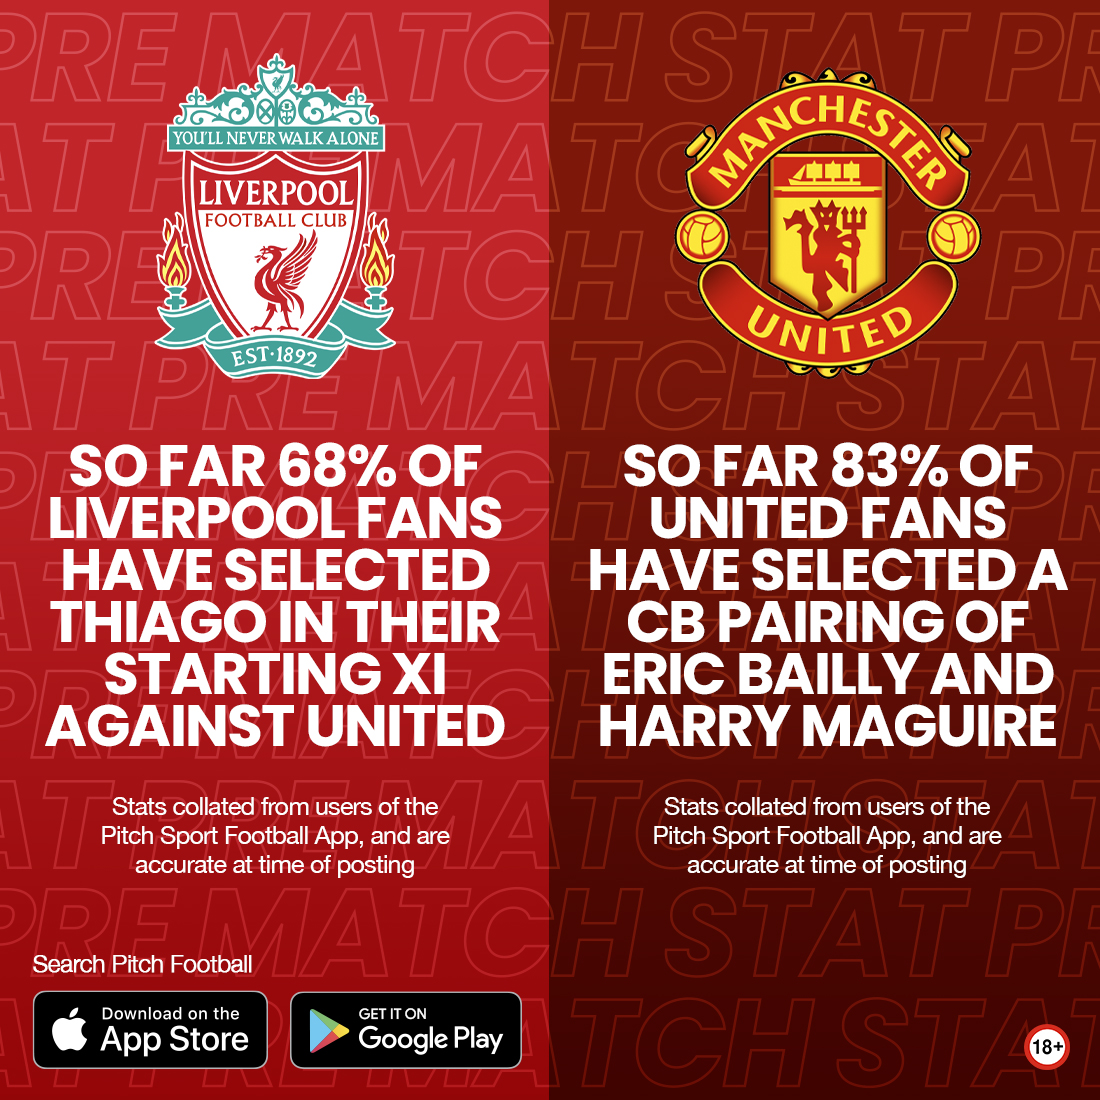 So far on Pitch Football, 68% of @LFC fans have selected Thiago in their starting XI's against @ManUtd.   So far 83% of #MUFC fans have selected a CB pairing of Eric Bailly and Harry Maguire.  Keep your predictions coming in for Sundays game on the app!   #LIVMUN #PL